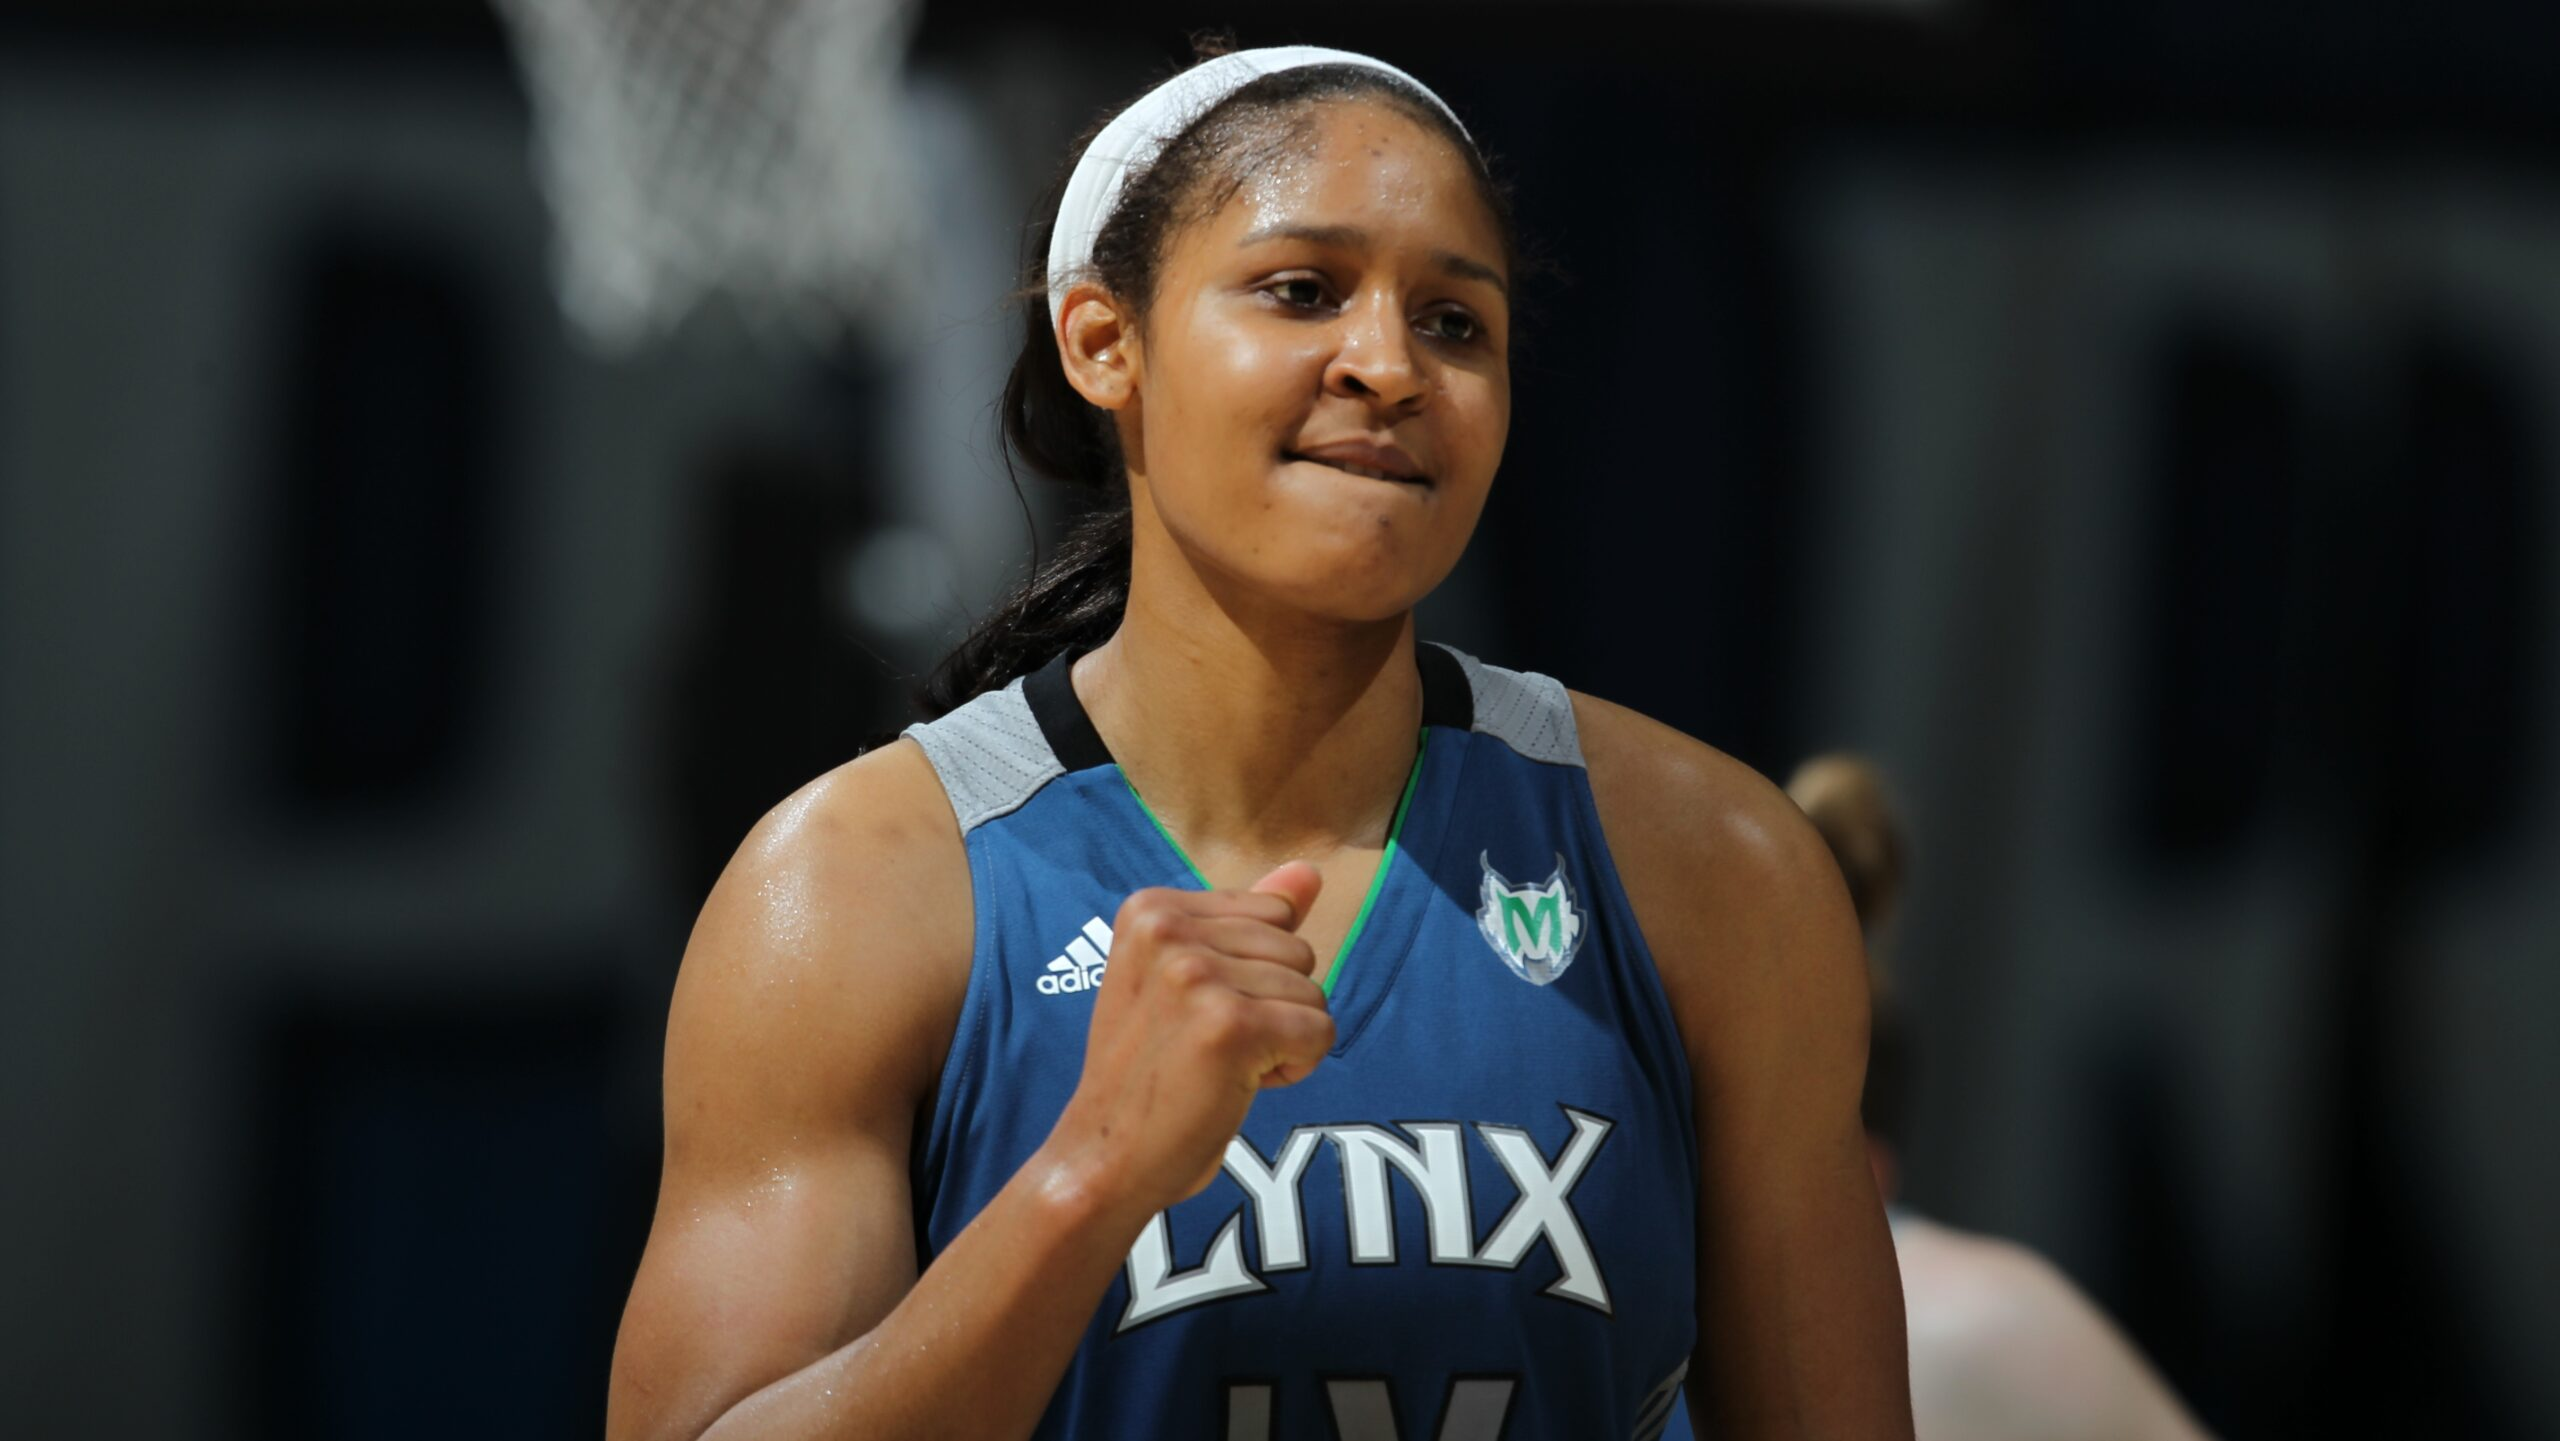 Dishin & Swishin 6/28/12 podcast: Could there be a dynasty brewing? Maya Moore, Cheryl Reeve, Stephen Litel & Debbie Antonelli on the Lynx